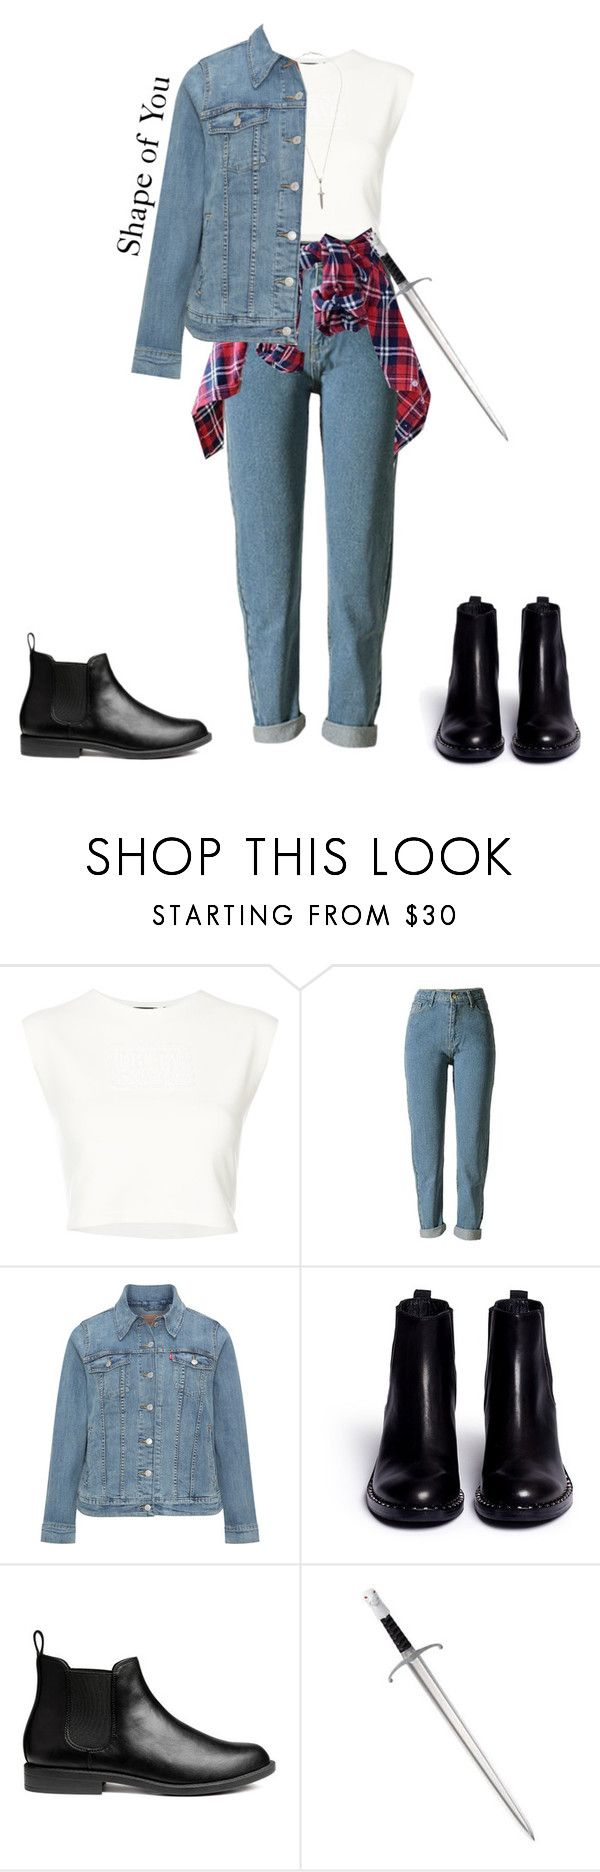 """""Romeo"" Outfit"" by kayla-santella ❤ liked on Polyvore featuring Puma, Levi's, Ash and Roman Paul"